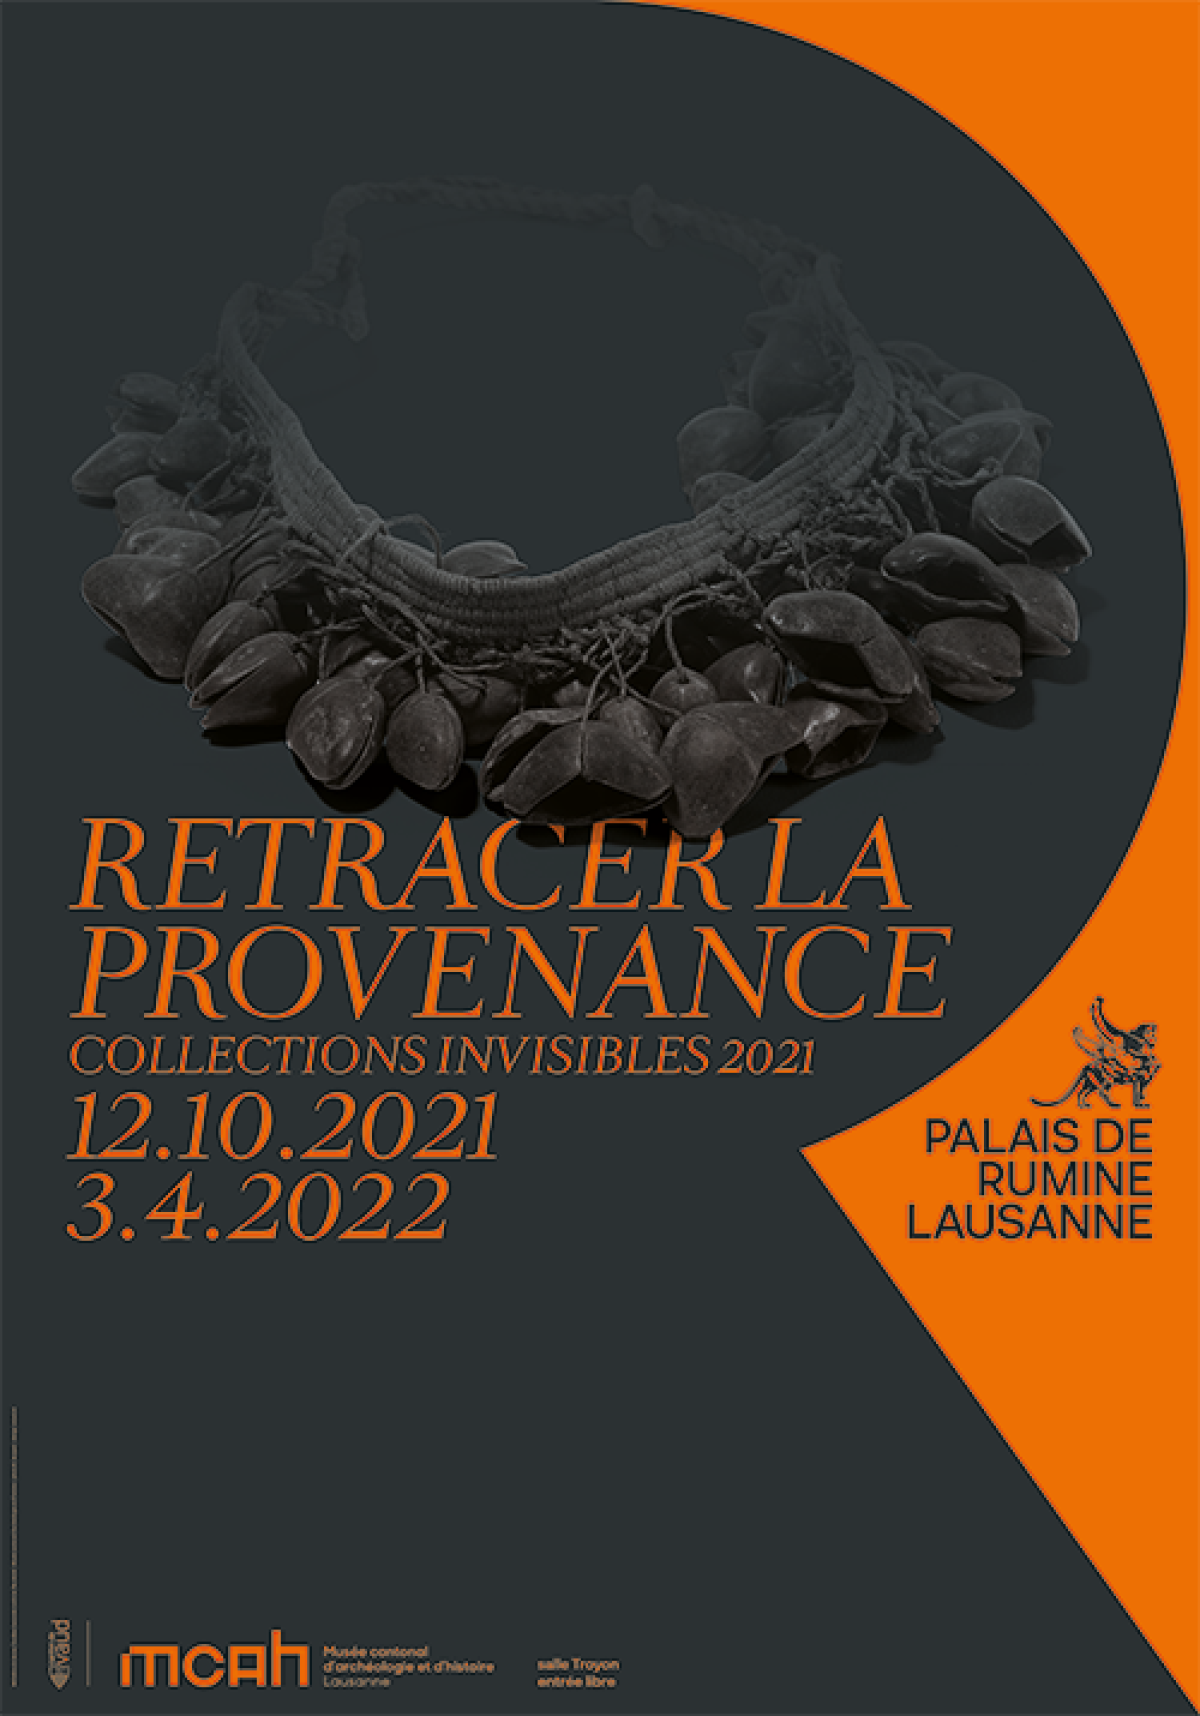 Tracing Provenance